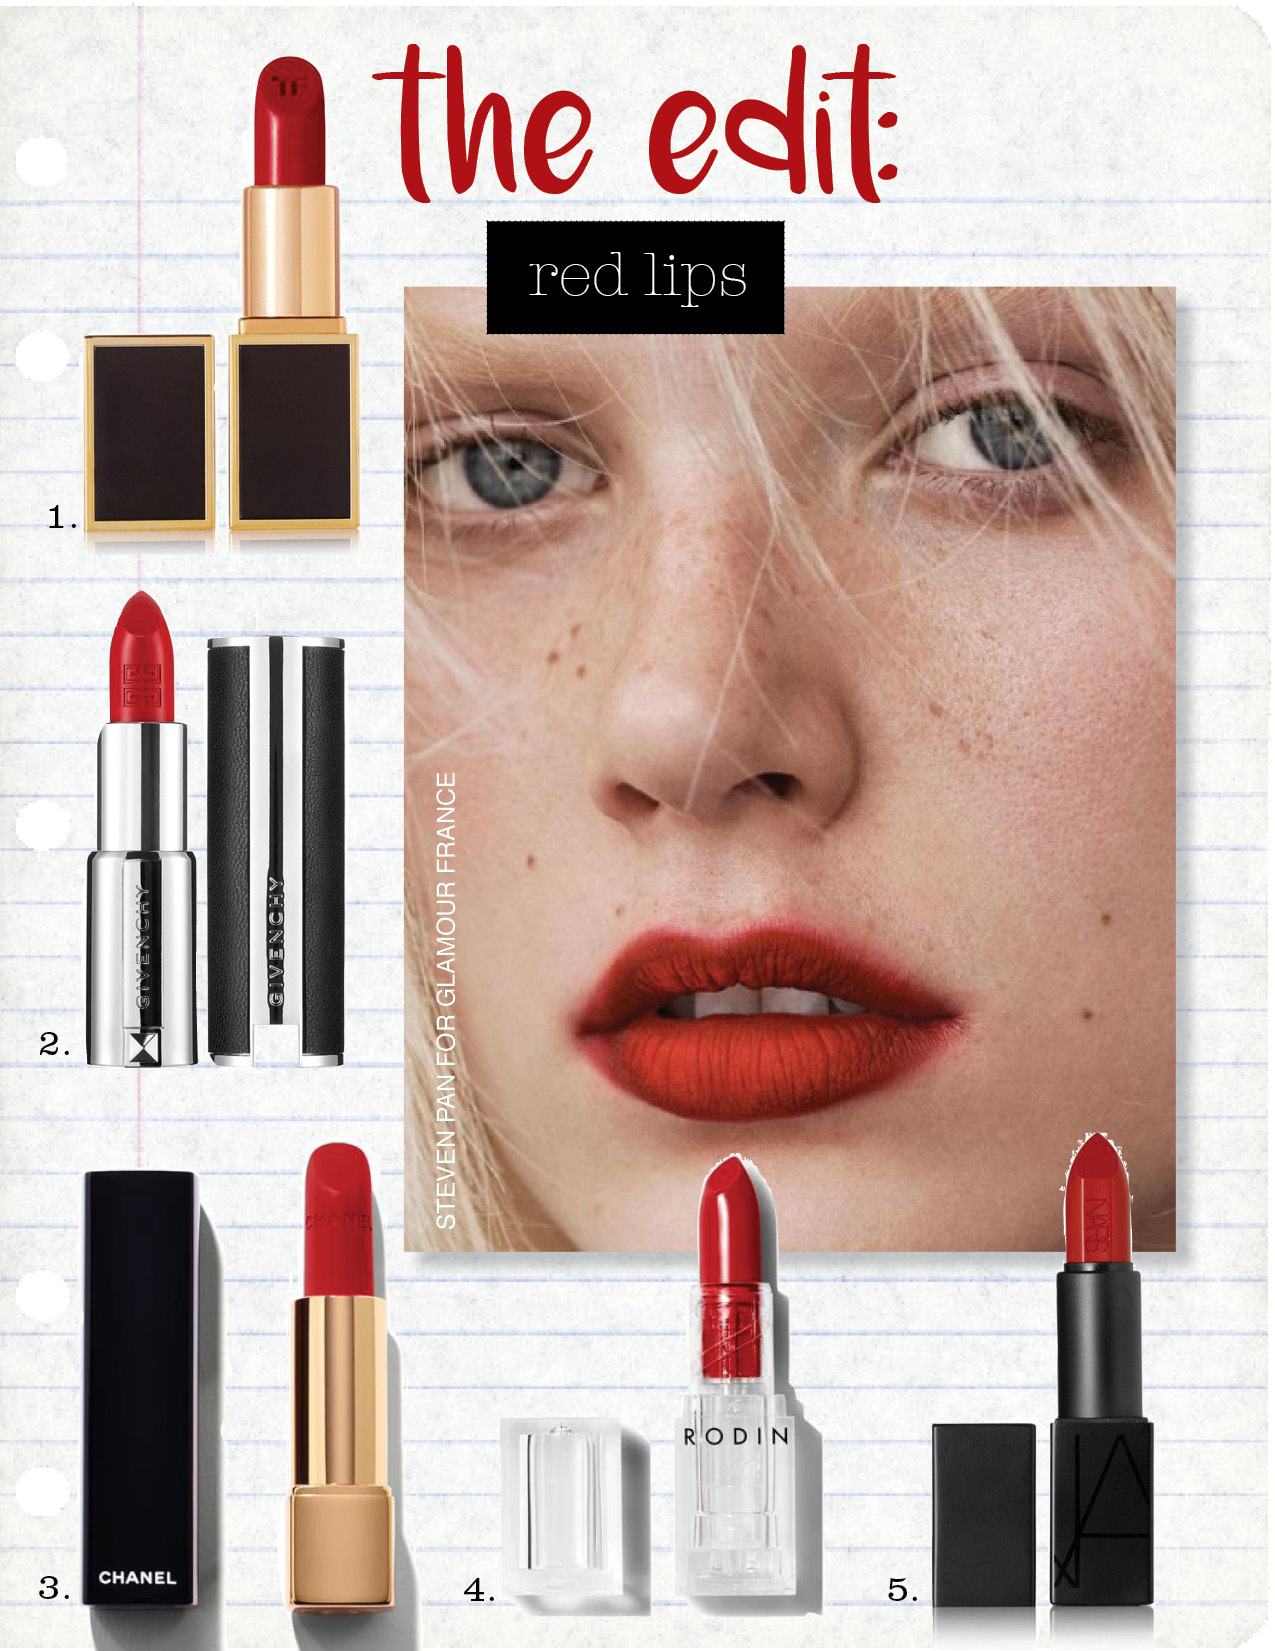 1. tom ford beauty lips & boys - dominic 02, $36,  net-a-porter.com  2. givenchy le rouge - warm poppy red 306, $36,  sephora.com  3. chanel rouge allure intense long-wear lip colour - passion 104, $37,  violetgrey.com  4. rodin luxury lipstick - red hedy, $38,  violetgrey.com  5. nars audacious lipstick - rita, $34,  net-a-porter.com